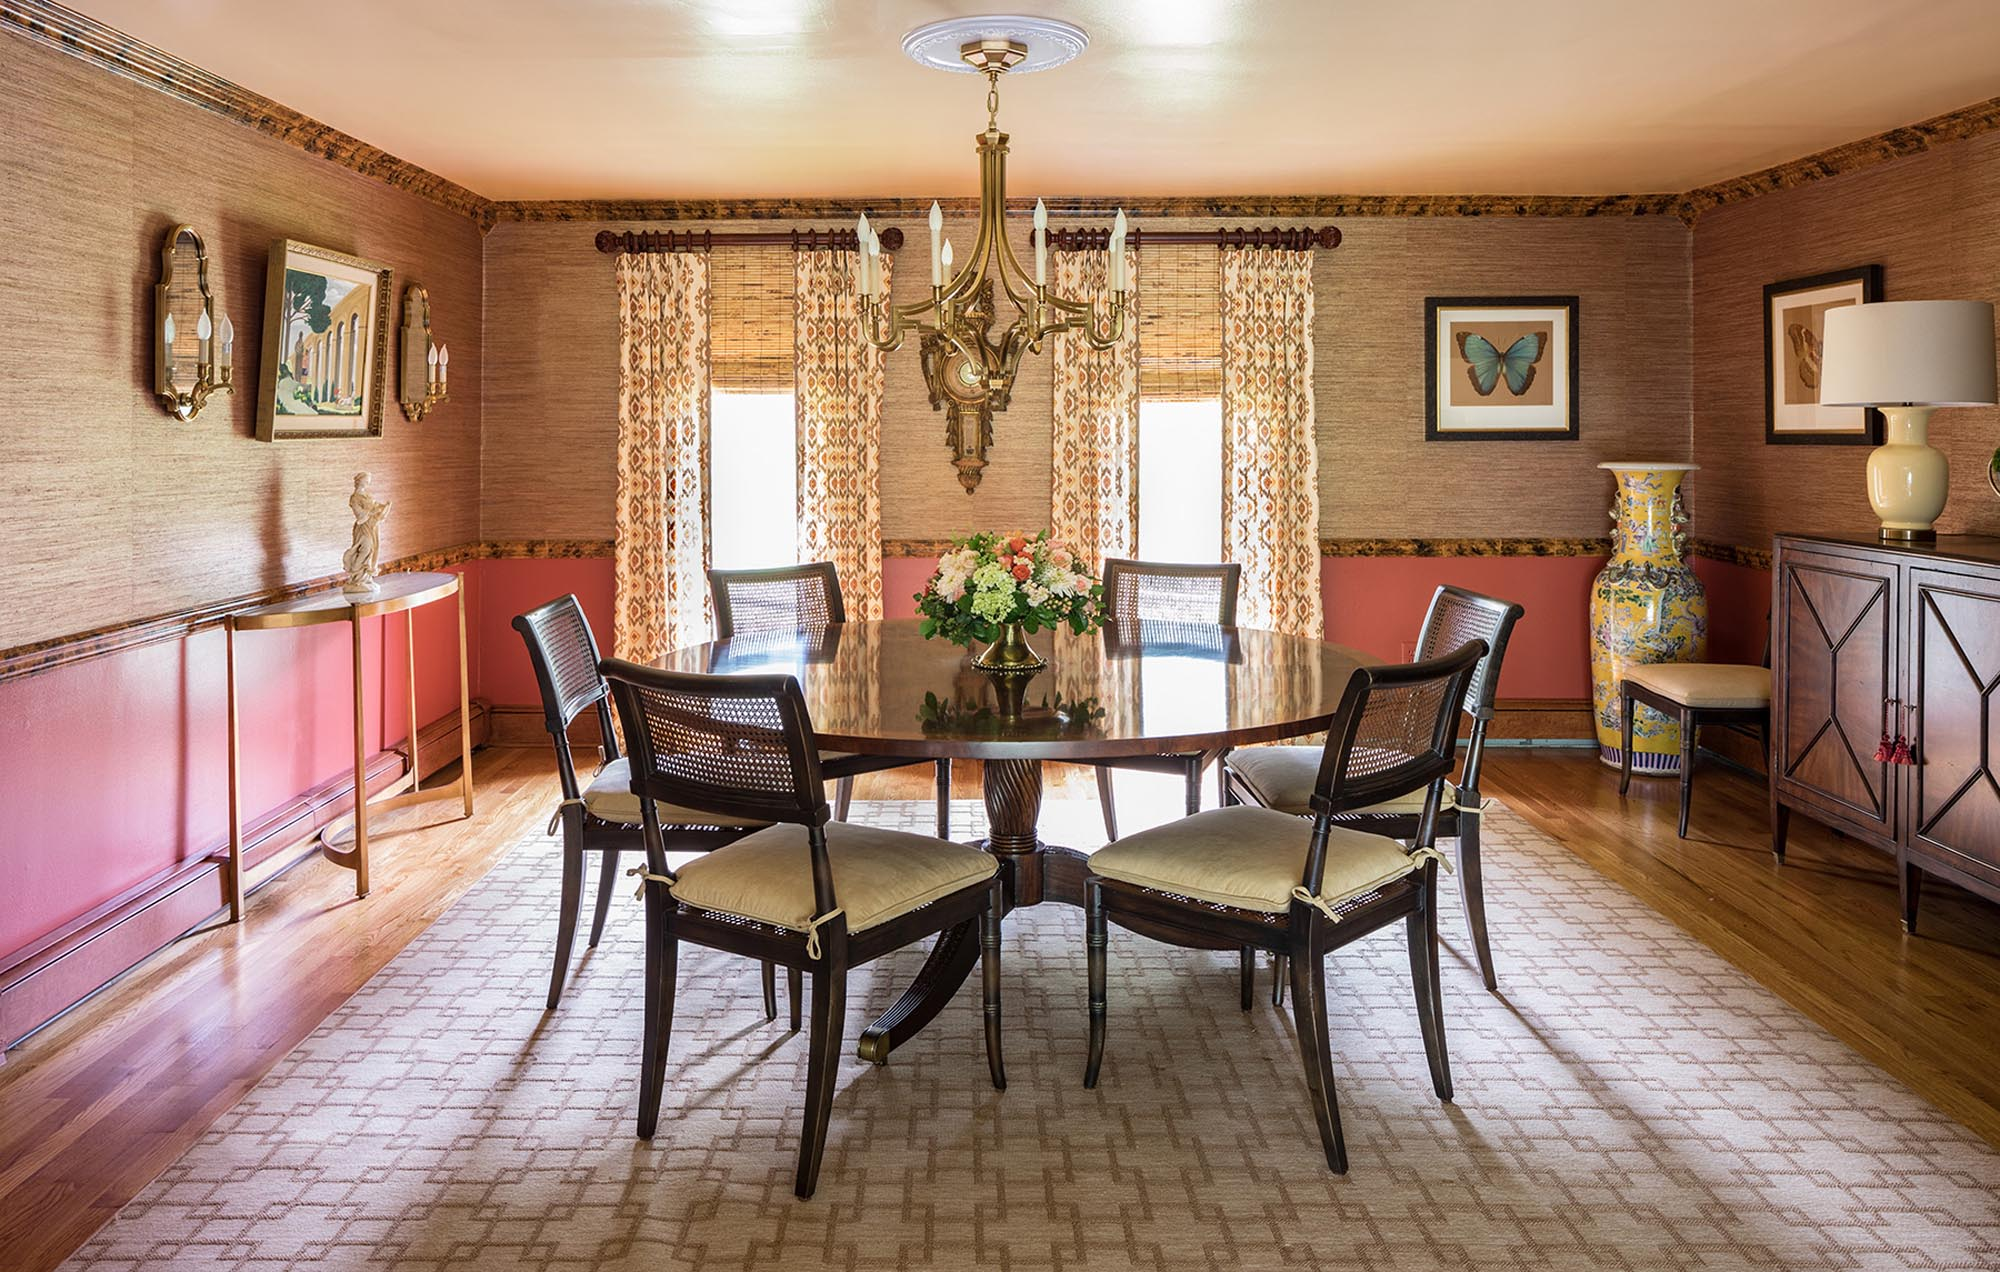 Warm dining area with round dining table for six and printed carpet